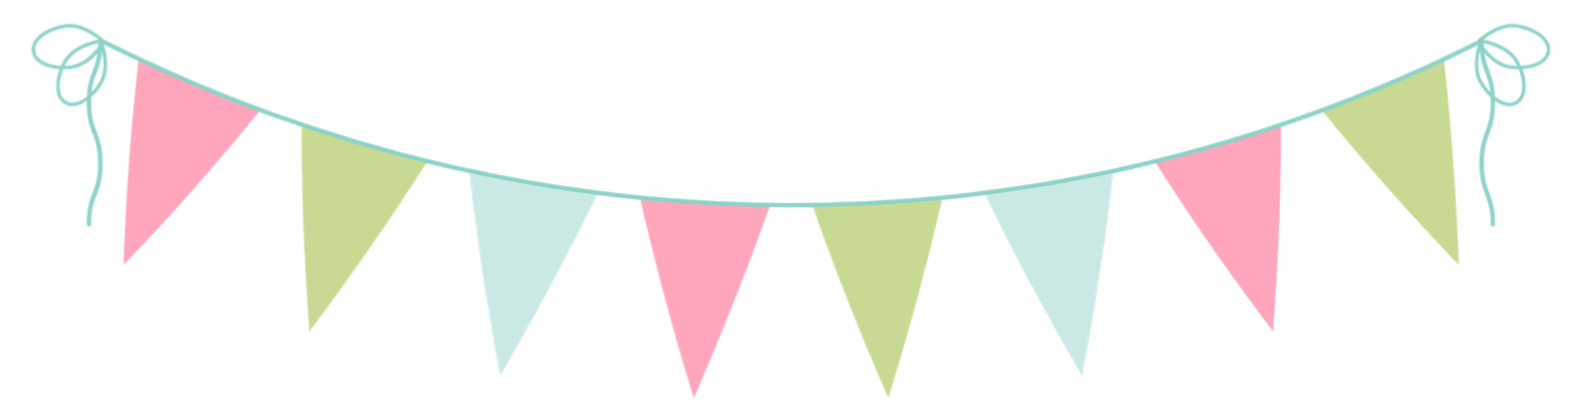 Pendant banner png. Pennant clipart free download